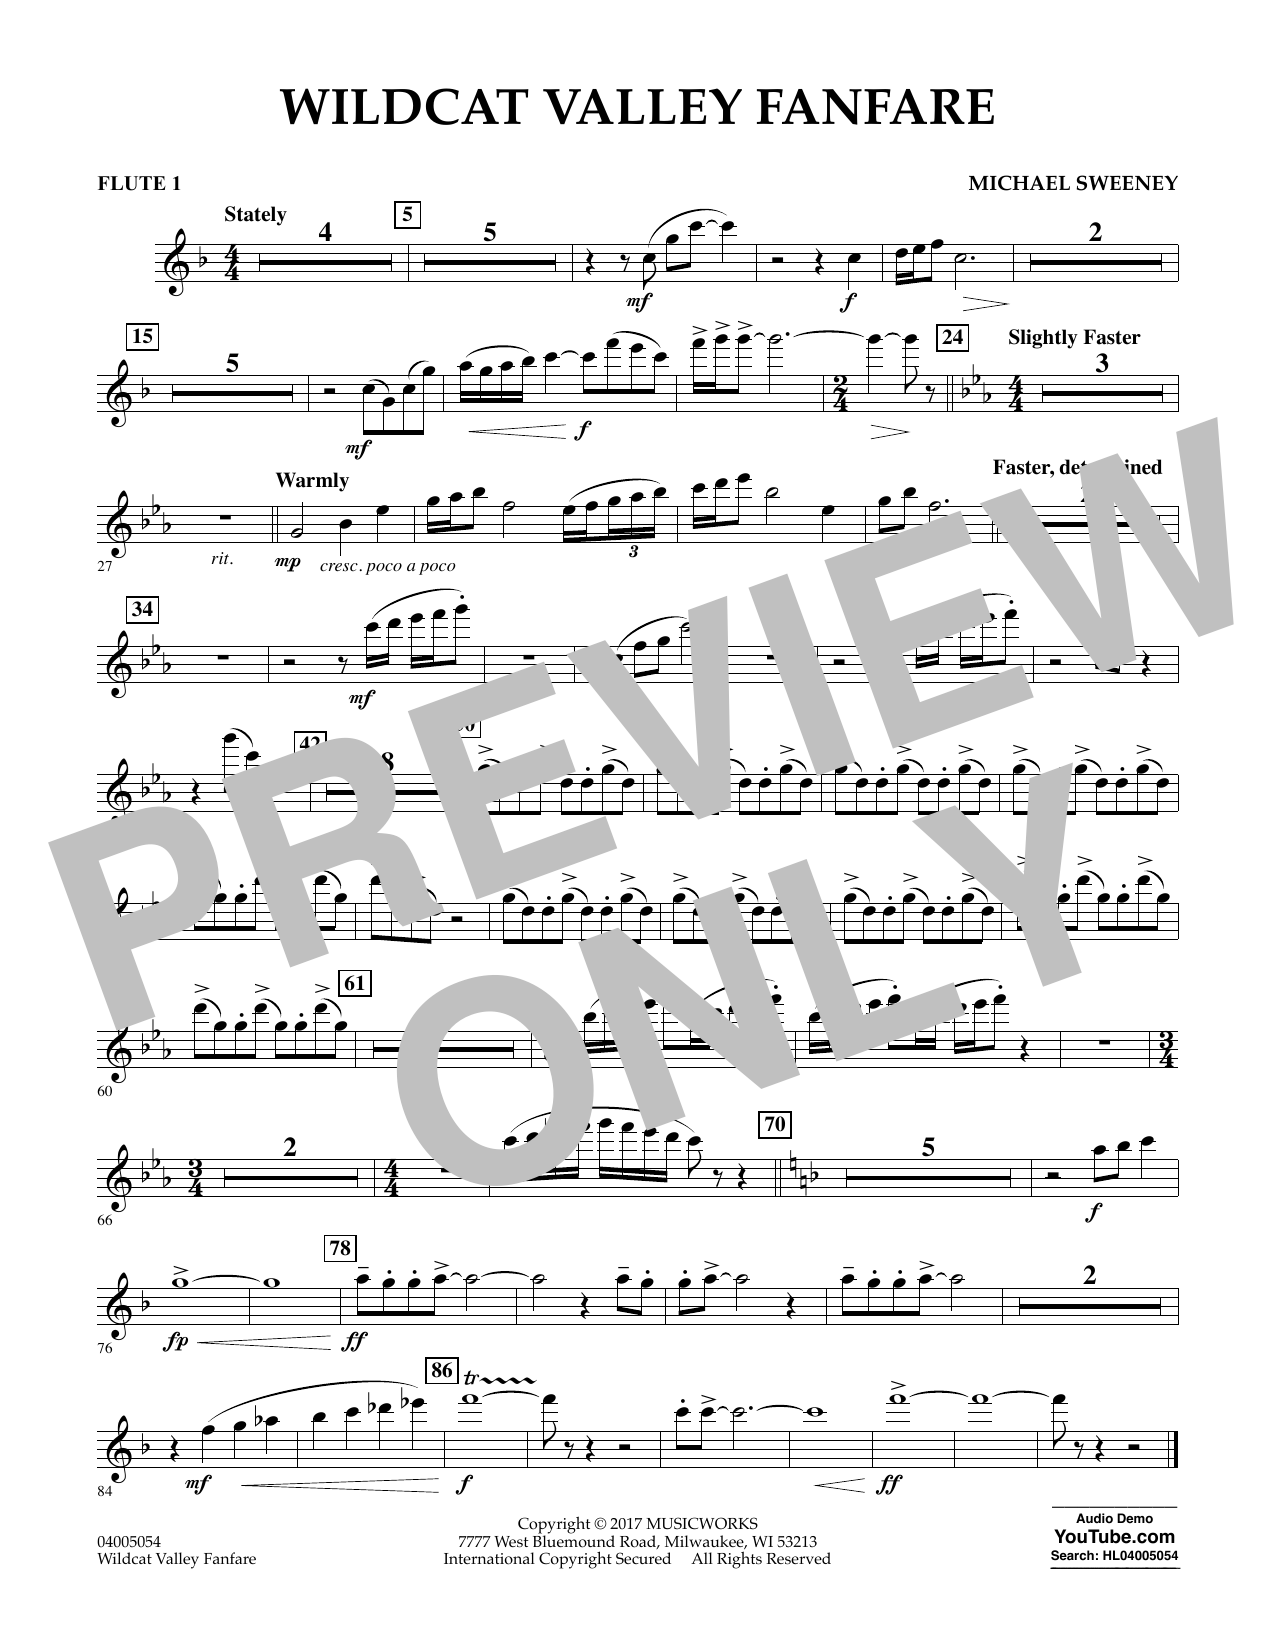 Michael Sweeney Wildcat Valley Fanfare - Flute 1 sheet music notes and chords. Download Printable PDF.